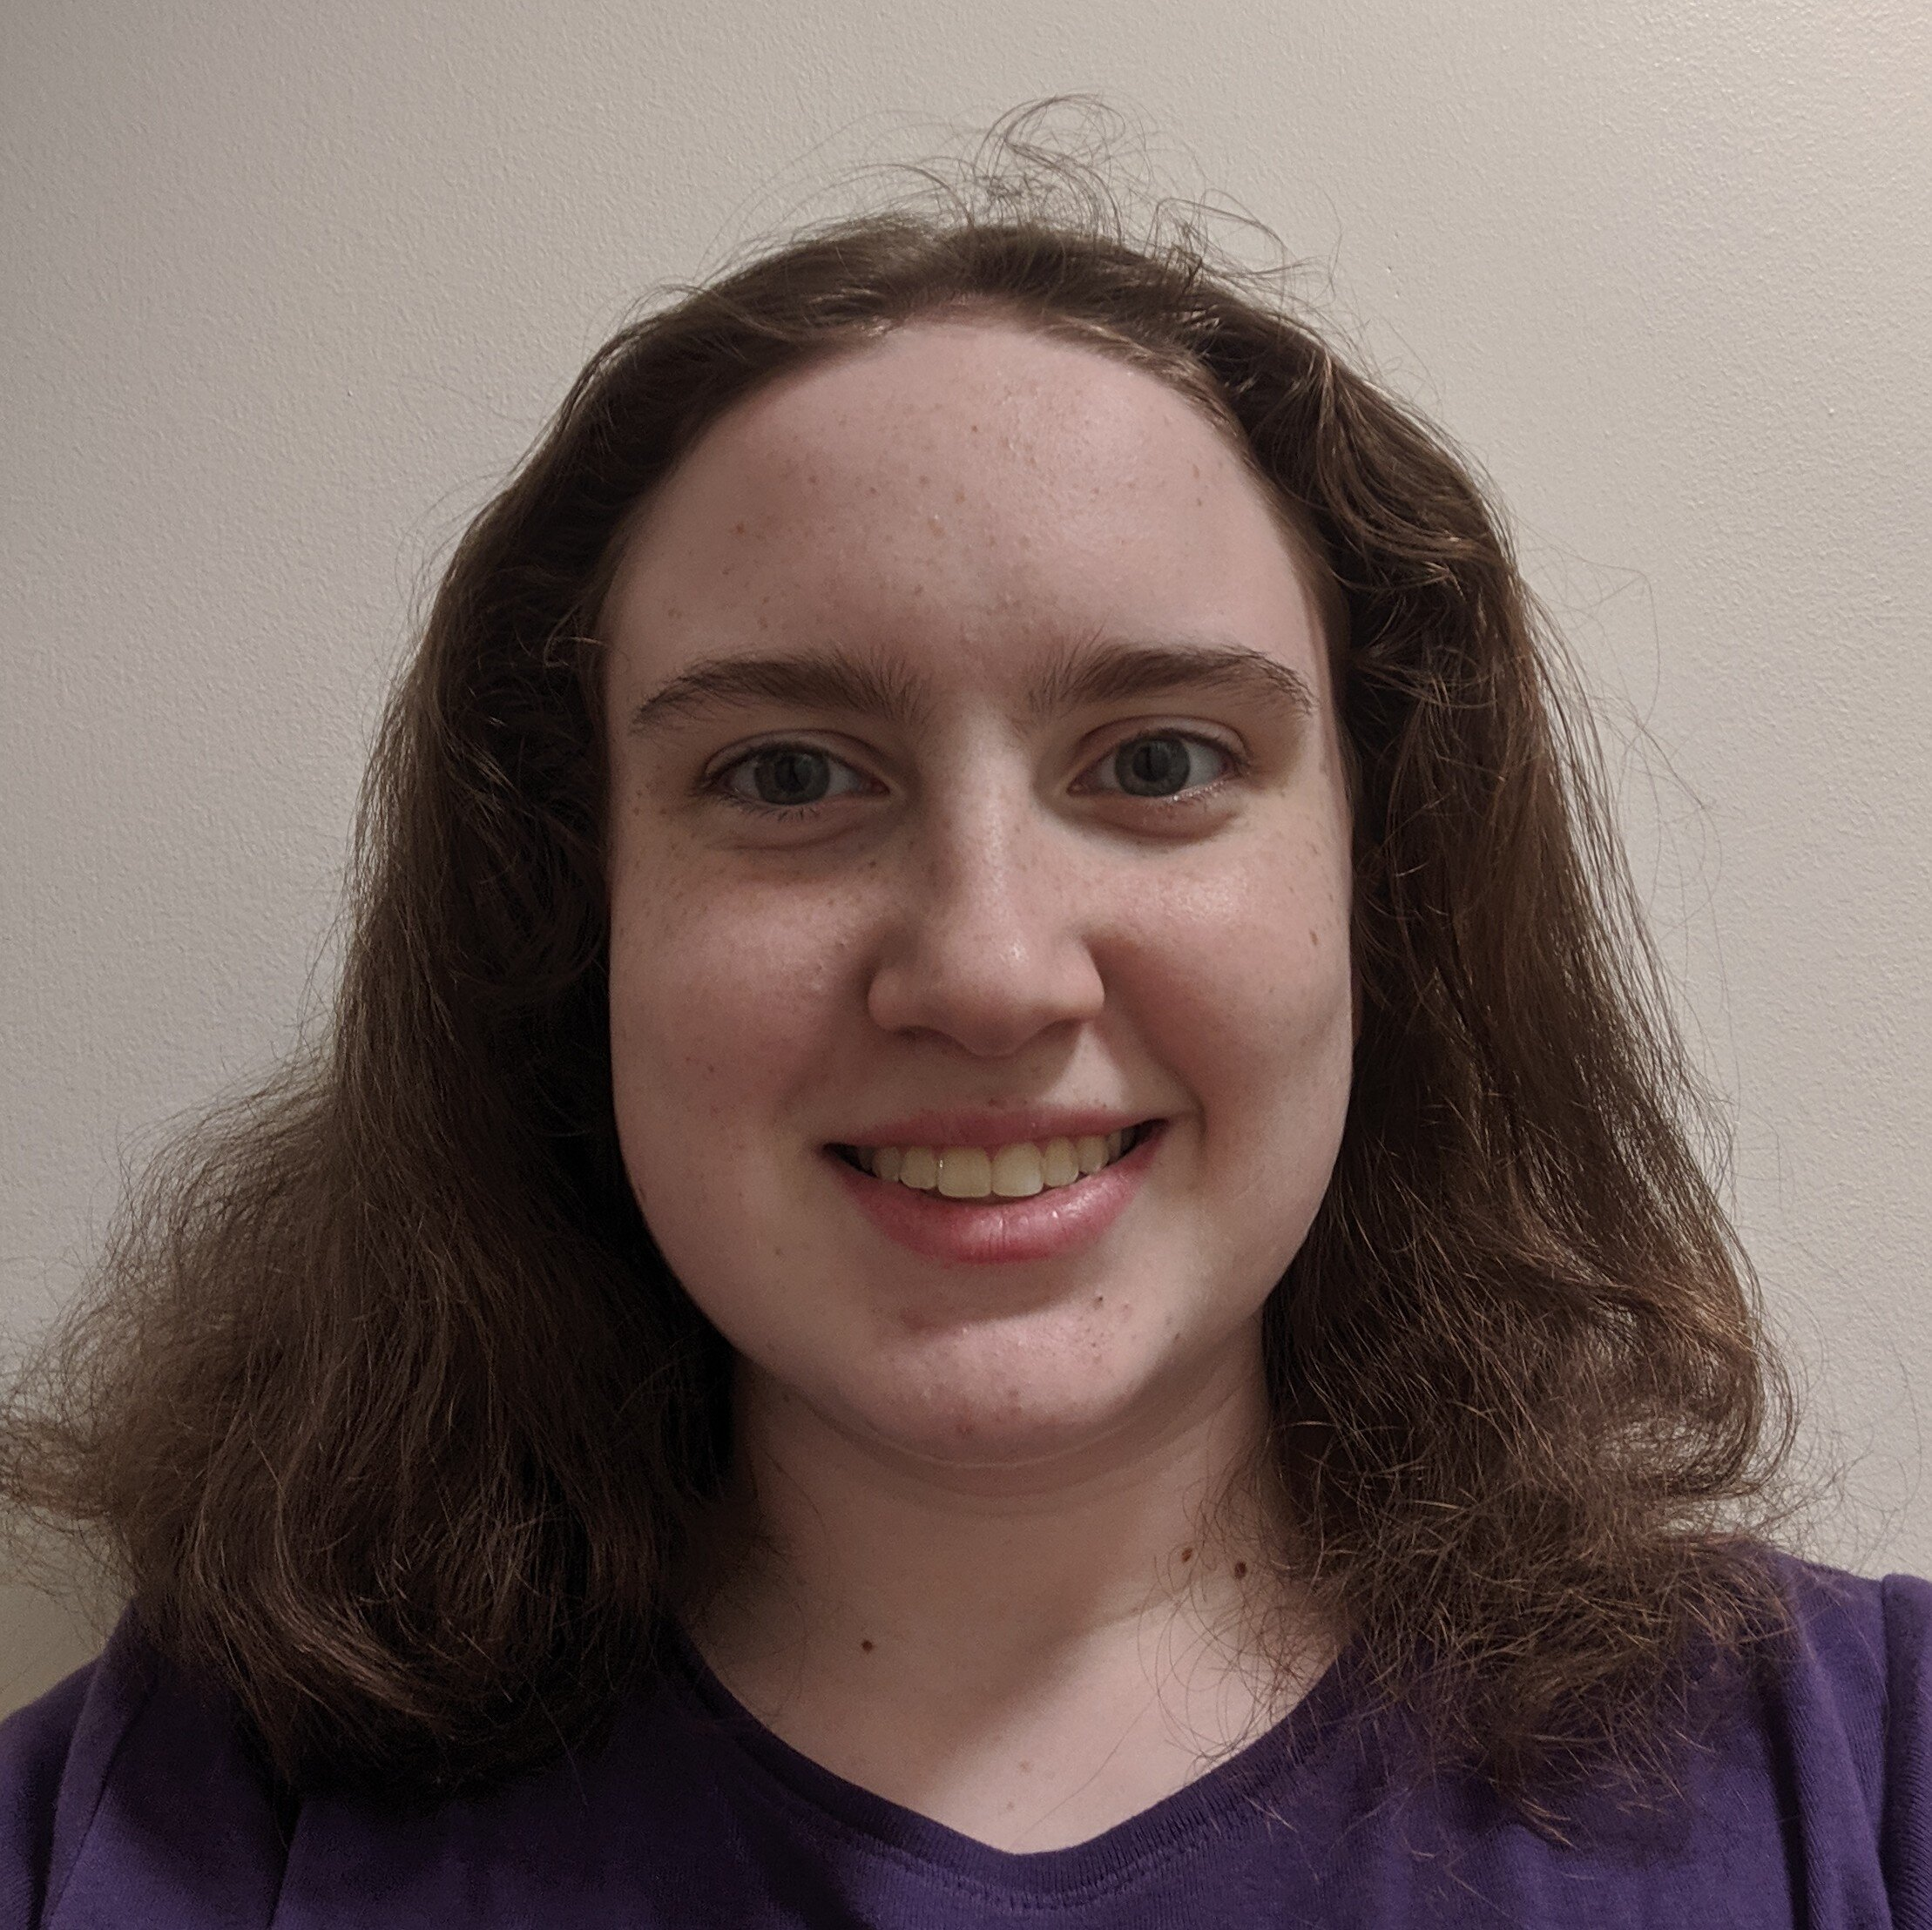 Emma Barnes - (Costume Crew),a sophomore, is excited to kick off another season of Spartan Theatre. Previously, she worked on lighting crew in Les Misérables and The Monster Under The Bed, and played Olivia in the 2019 Winter One-Acts. She would like to thank TJ Green and Cameron James for keeping her sane throughout the production, Mrs. Bridges and all the other parent volunteers for providing much-needed help and advice, and her parents, for helping her get through everything relatively in one piece.